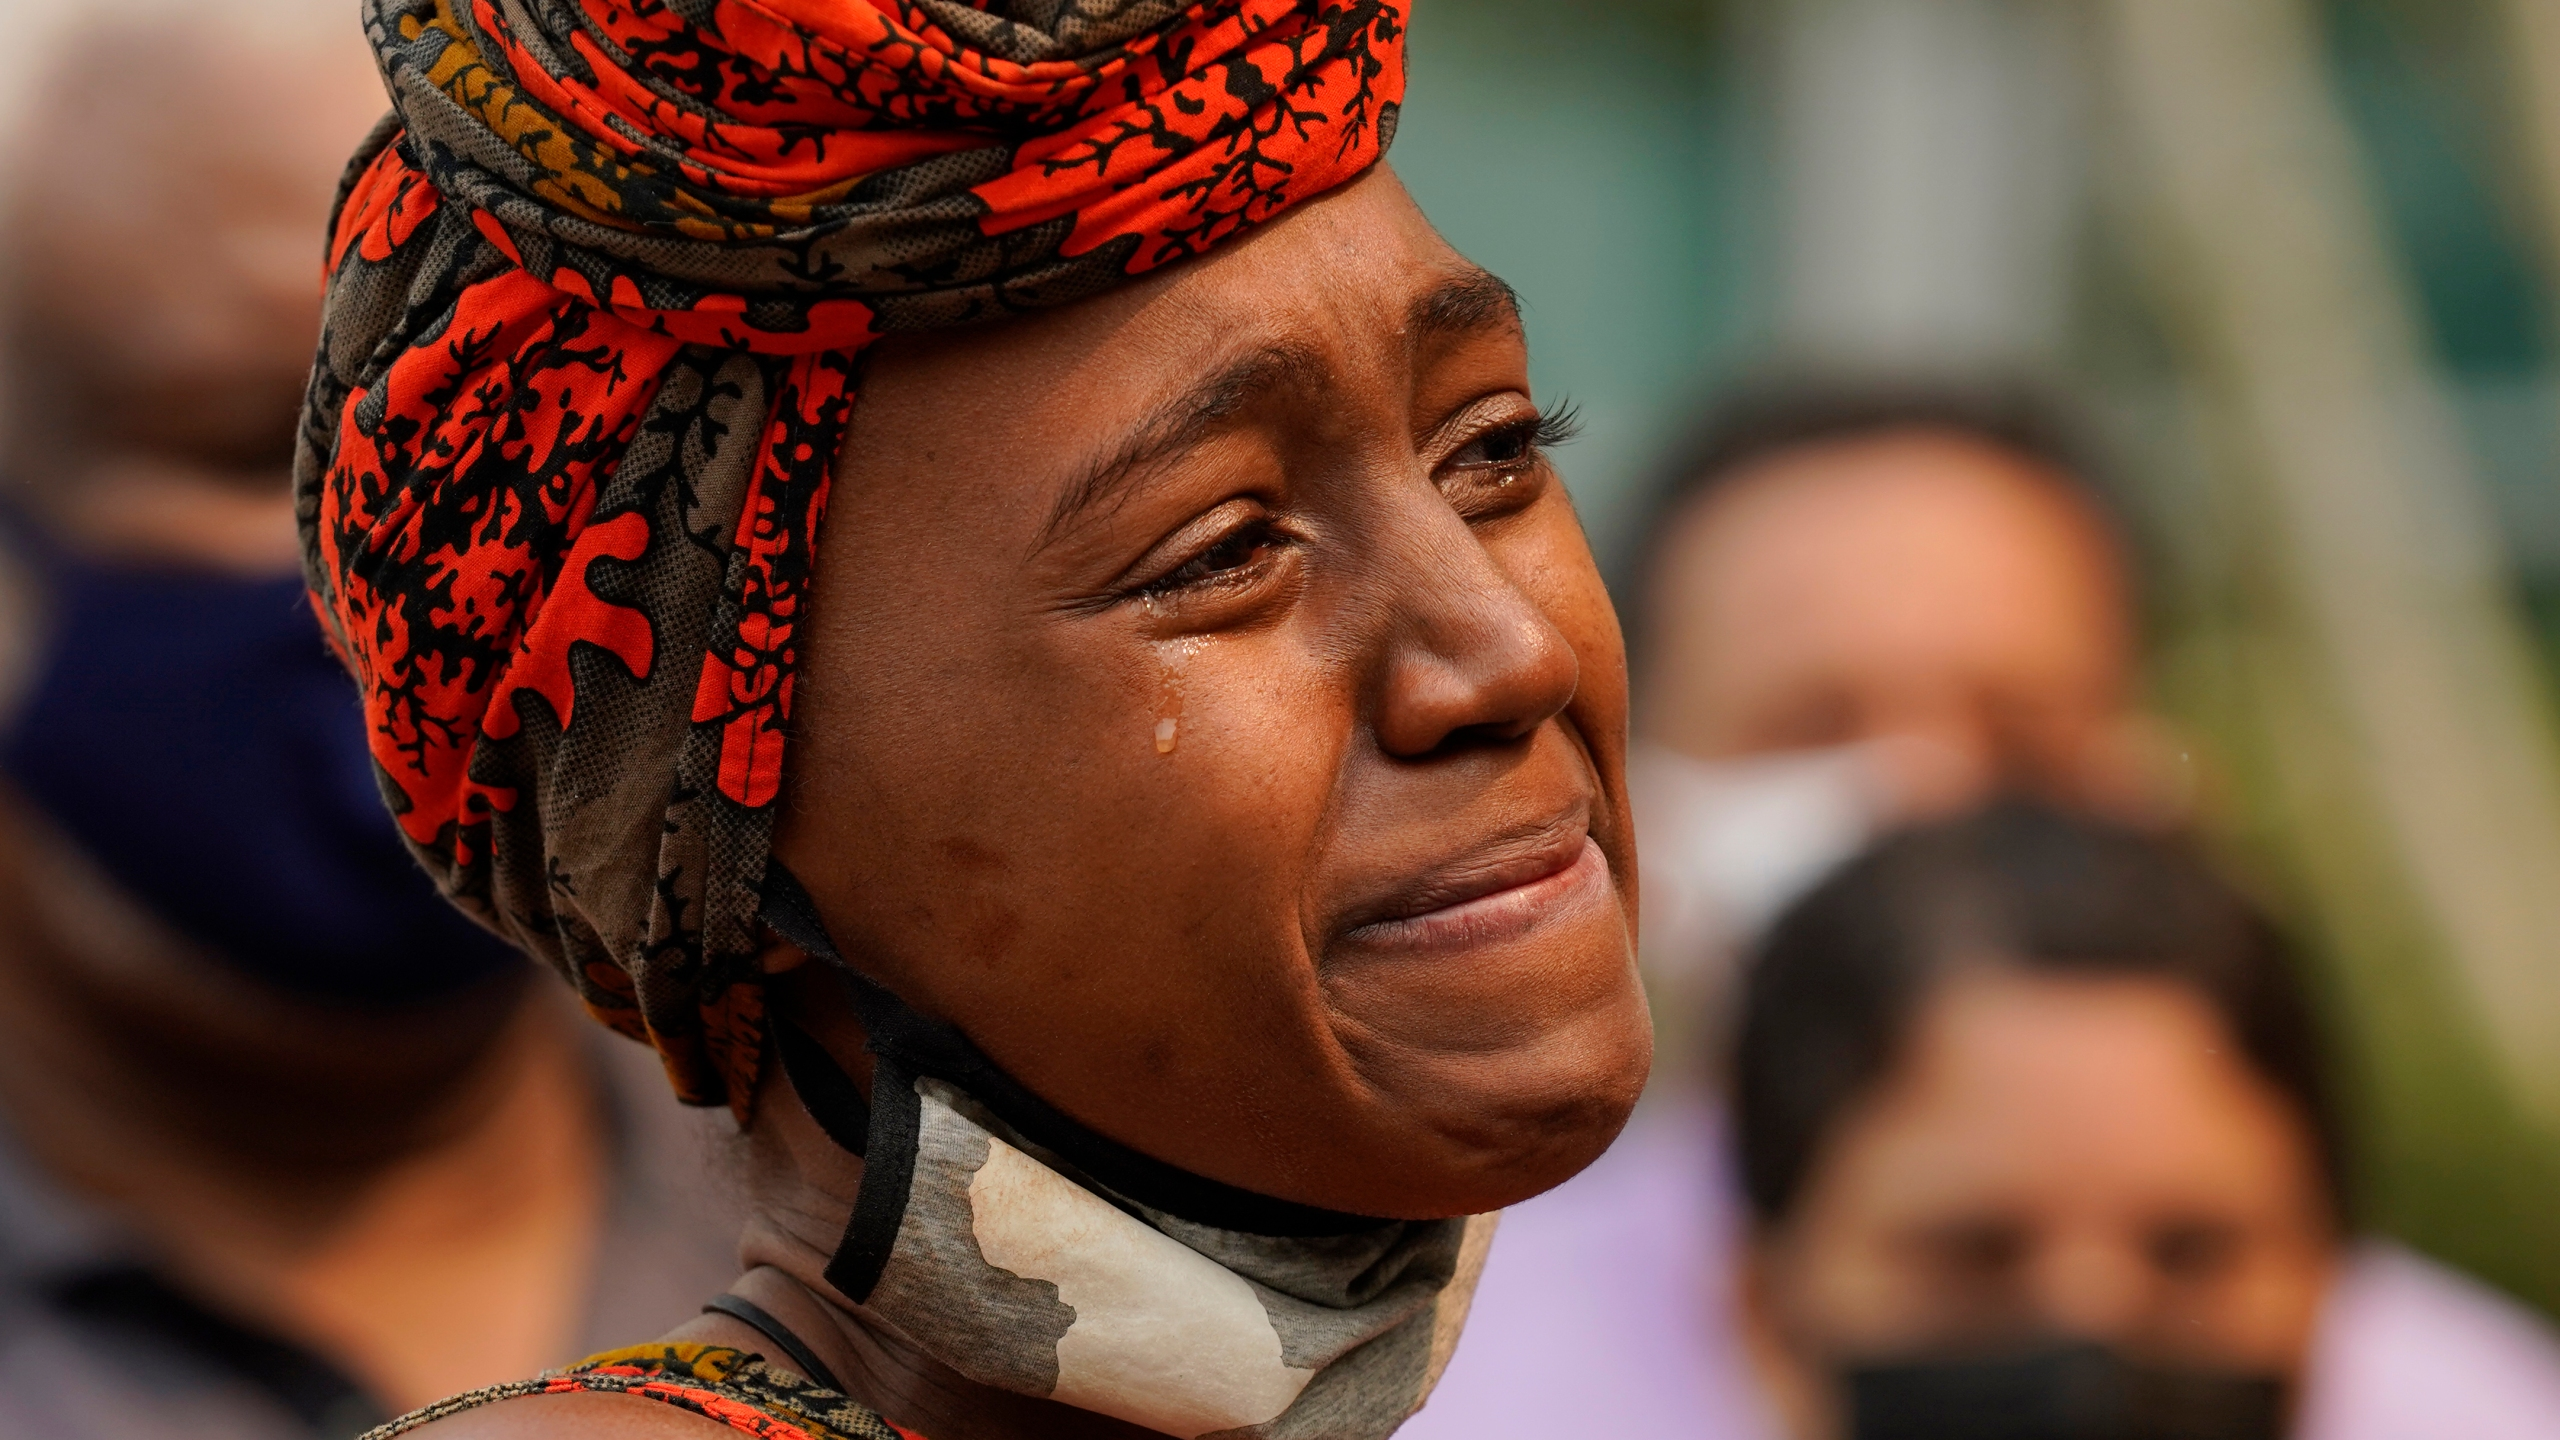 A tear streams down Nakia Porter's cheek during a news conference in Sacramento to announce the filing of a federal lawsuit she has brought against two Solano County Sheriff's deputies on Aug. 18, 2021. (Rich Pedroncelli / Associated Press)